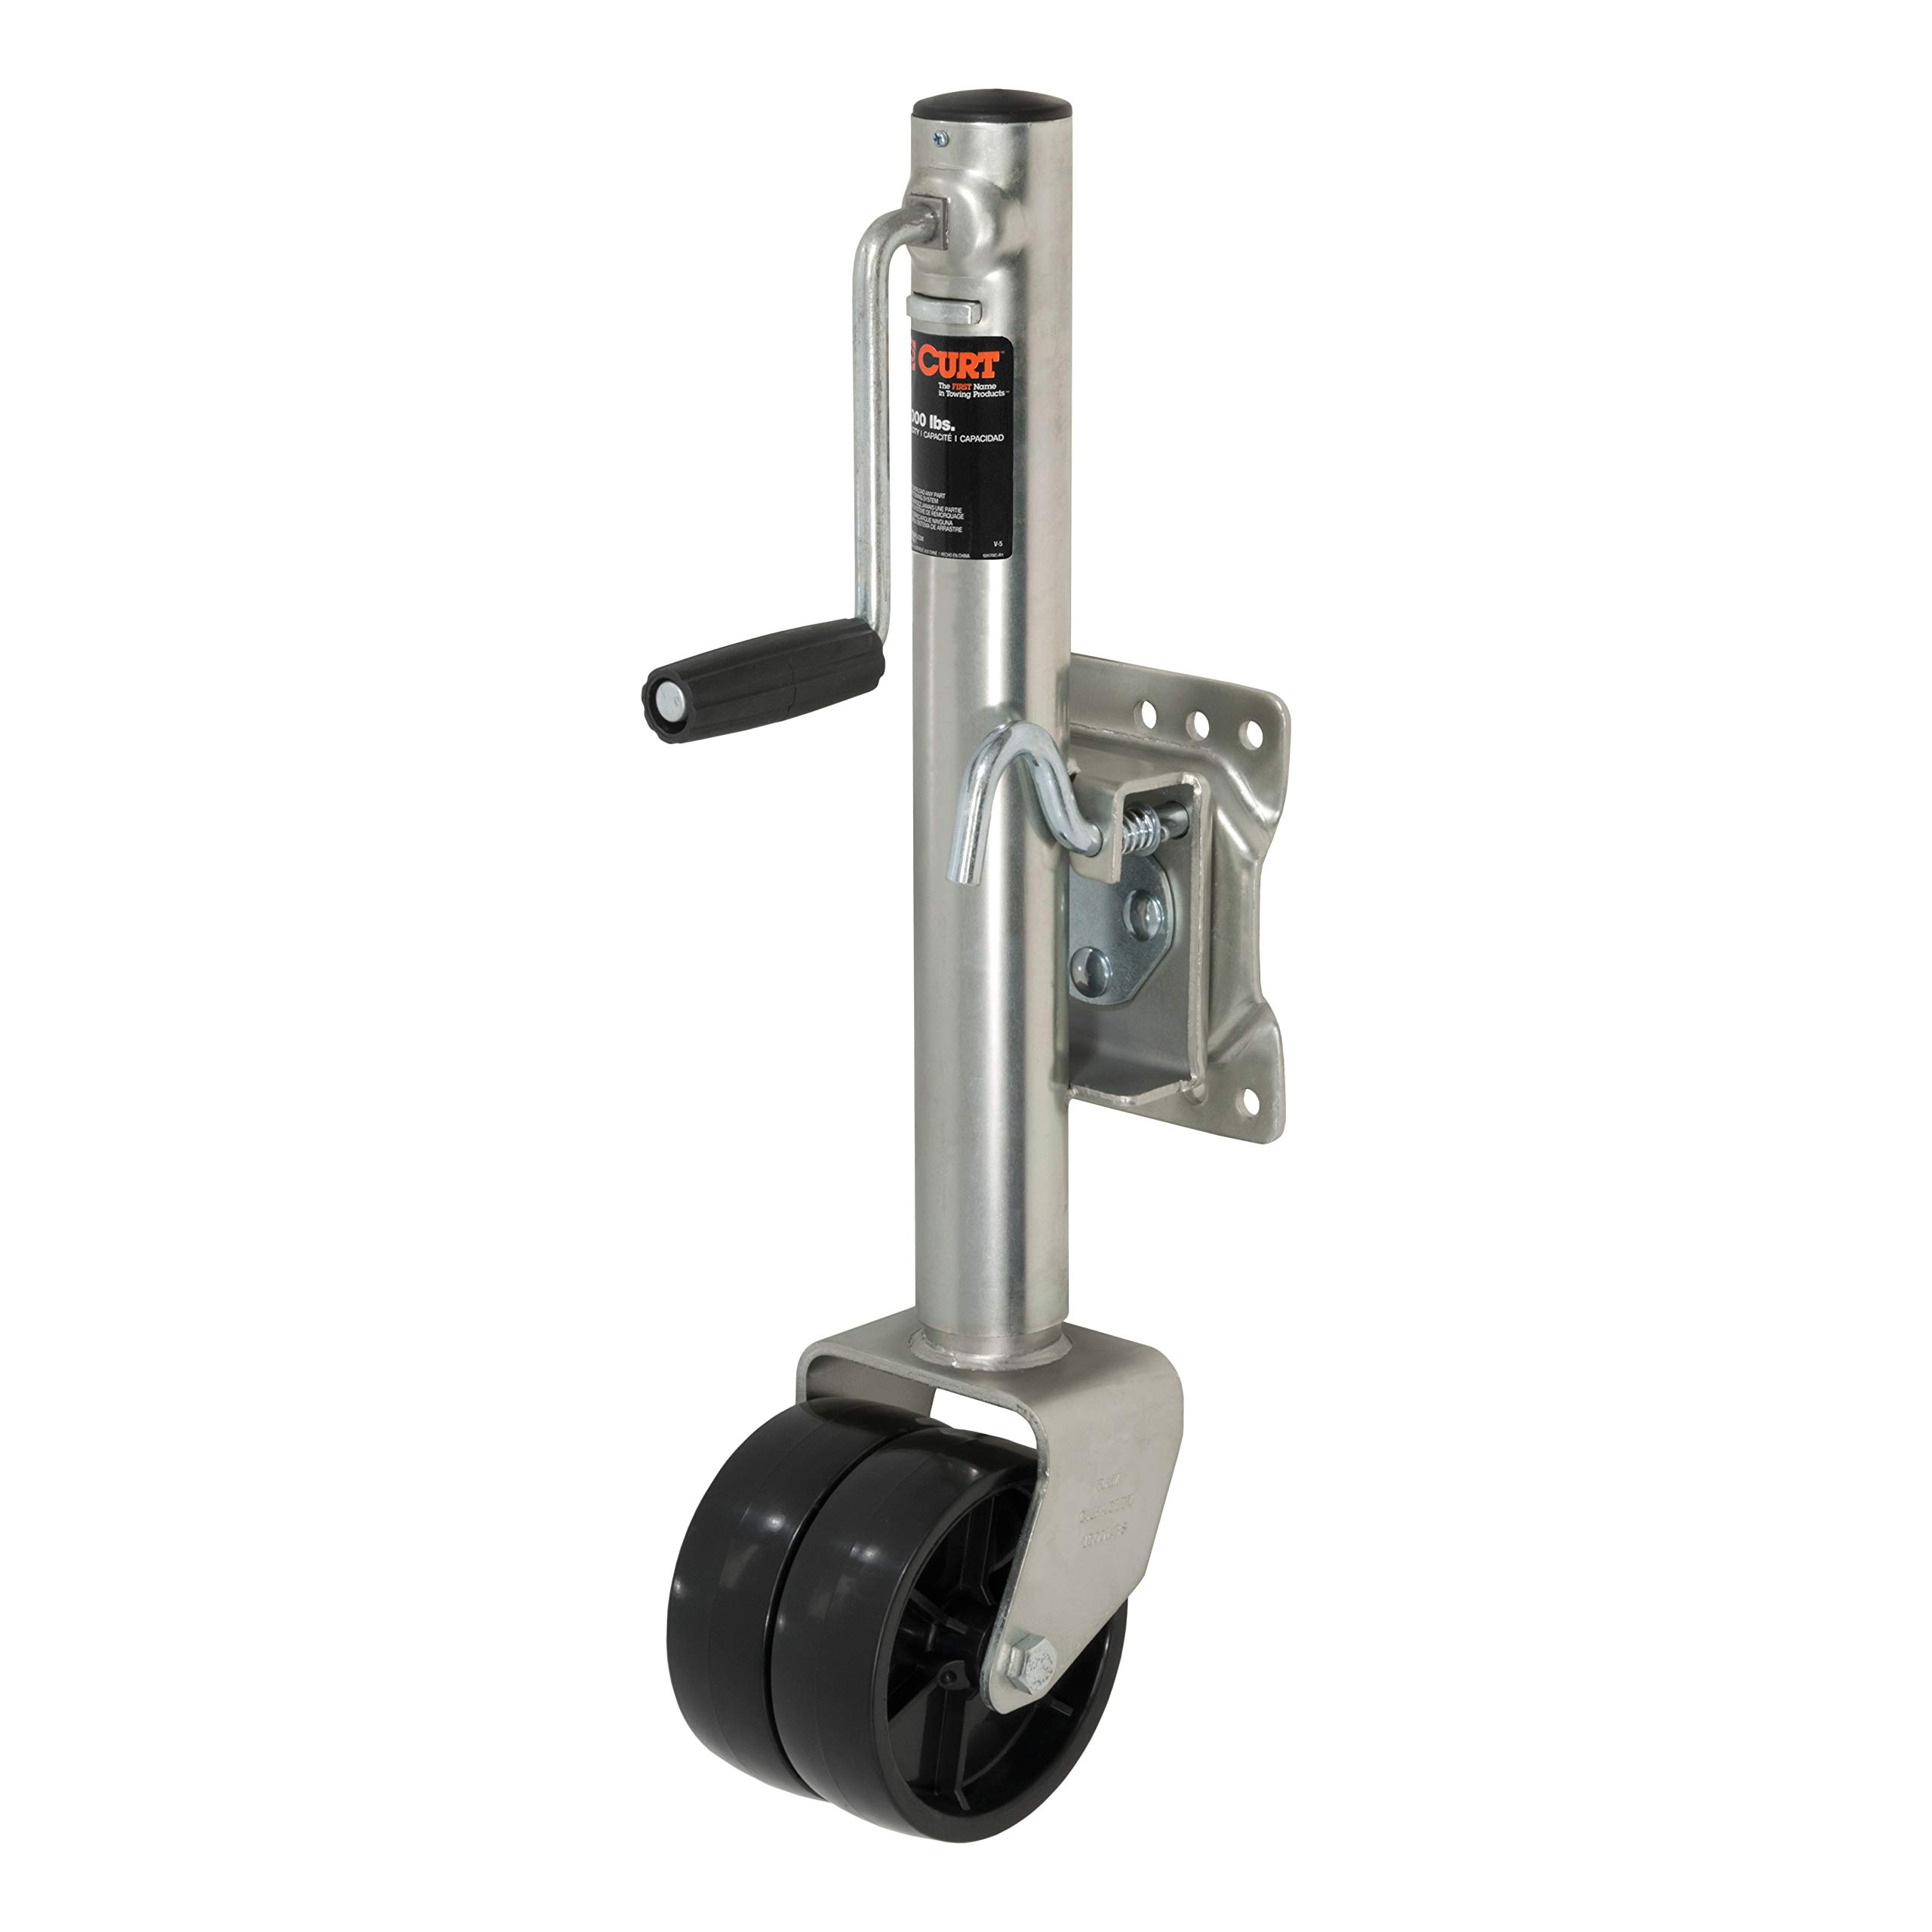 CURT 28156 Marine Boat Trailer Jack with 6-Inch Wheels 1,500 lbs, 10-3/8 Inches Vertical Travel by CURT